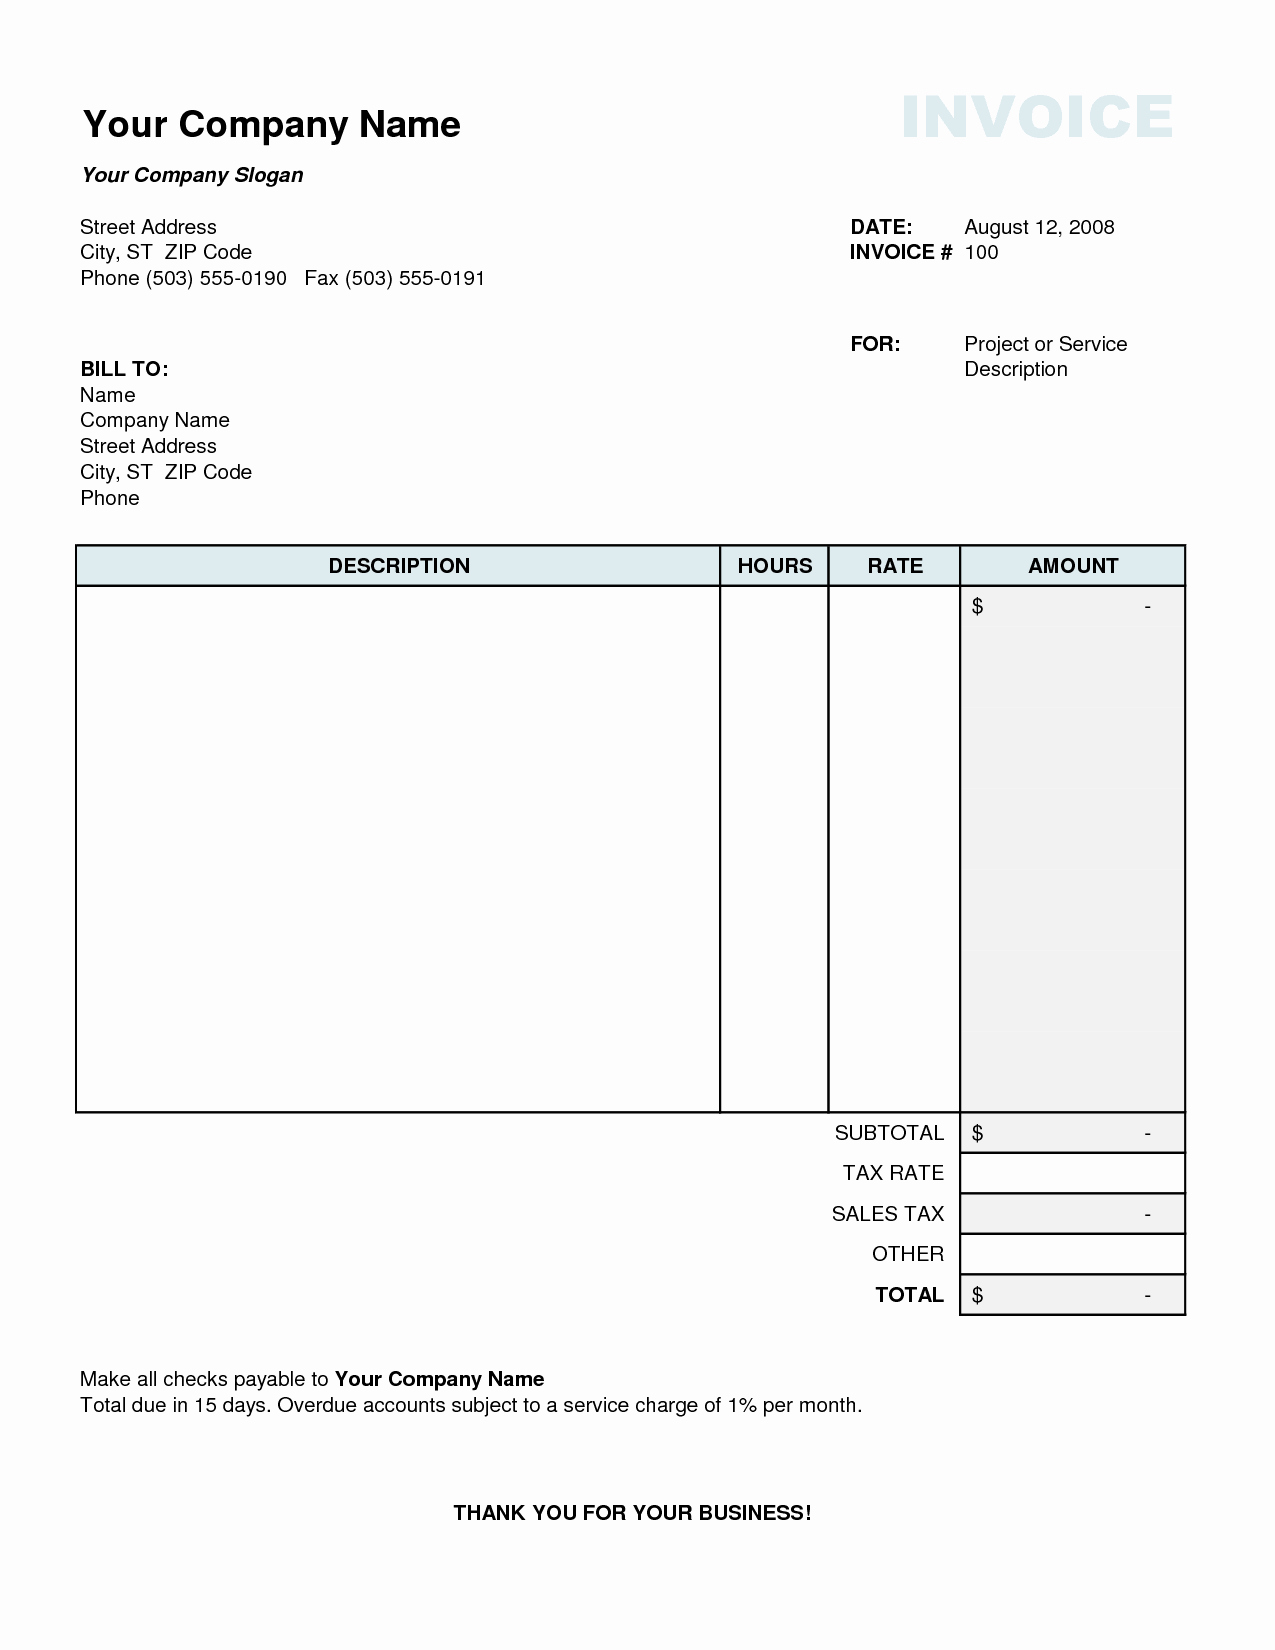 Excel Invoice Template 2003 Fresh Tax Invoice Template Excel